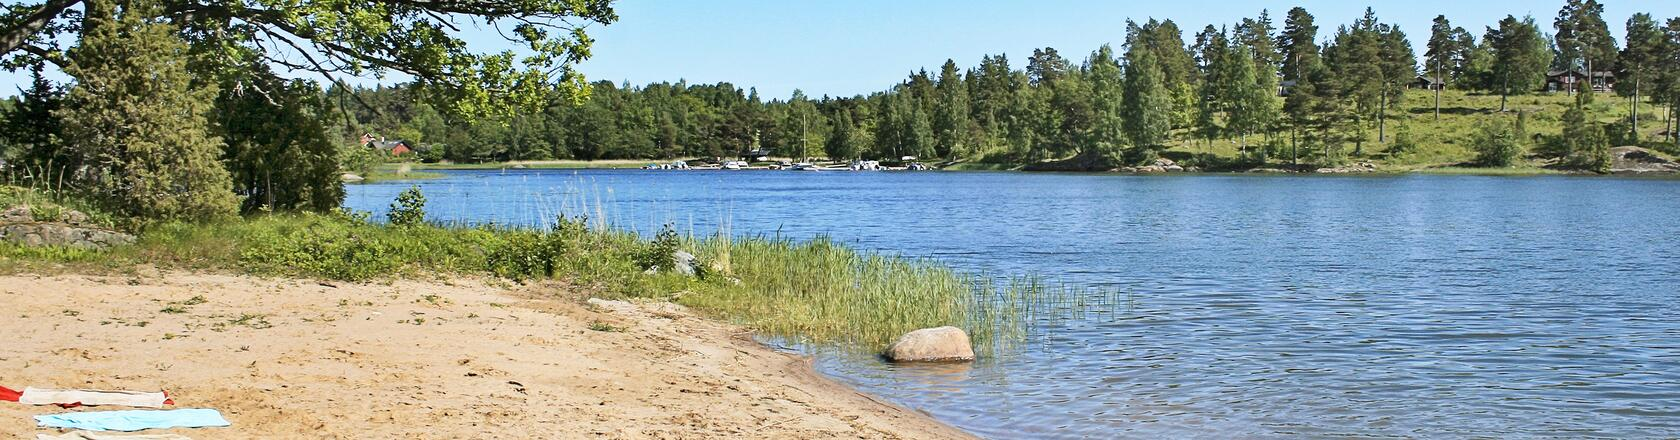 Roslagen in Sweden - Rent a holiday home in with DanCenter